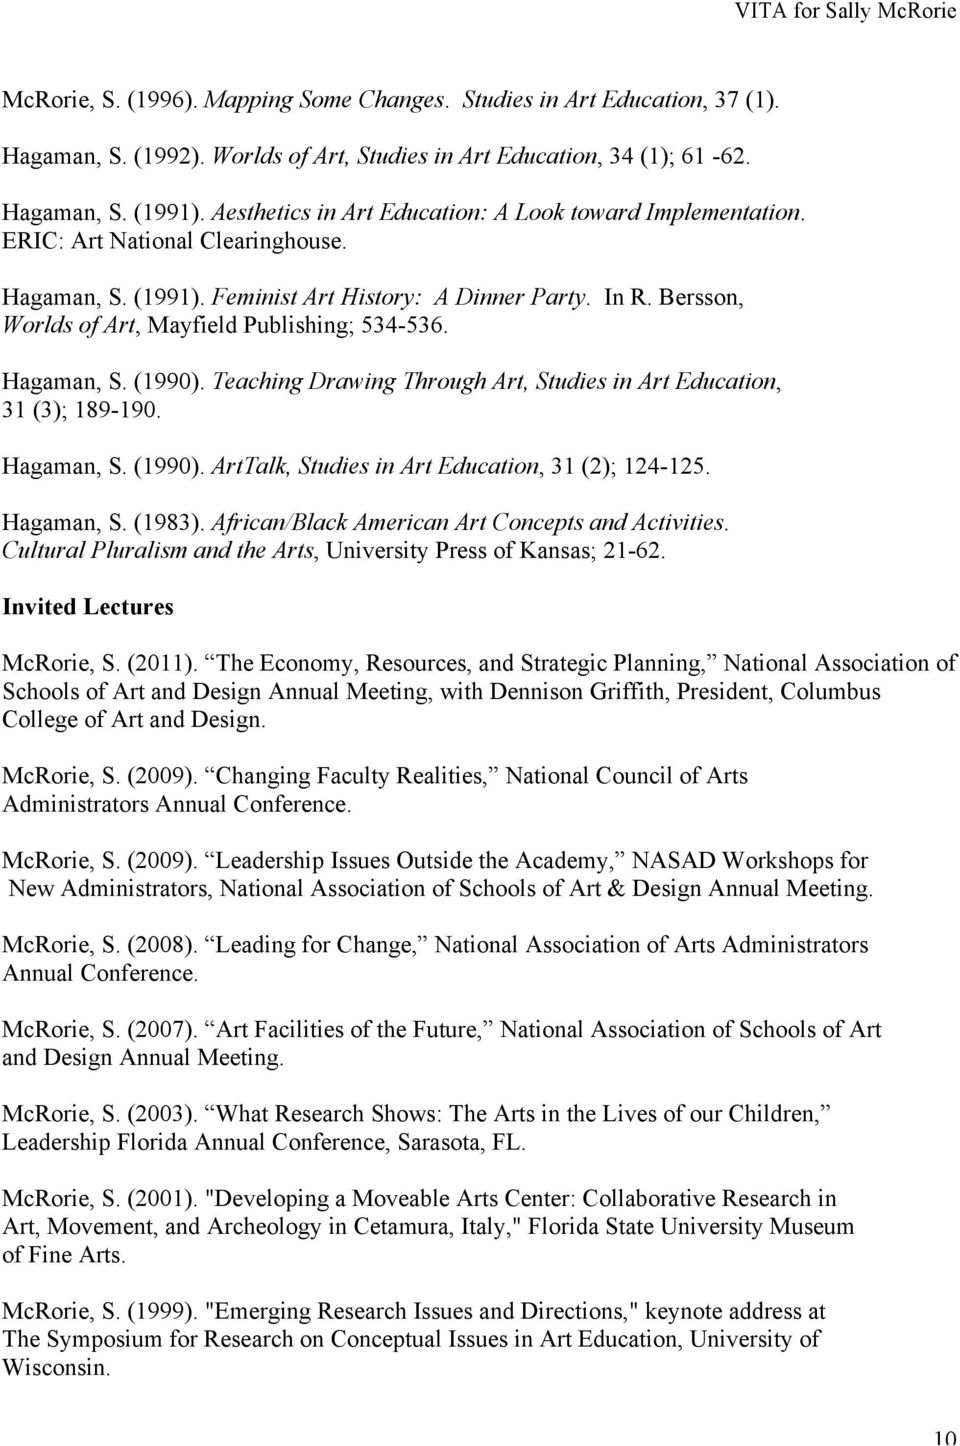 Bersson, Worlds of Art, Mayfield Publishing; 534-536. Hagaman, S. (1990). Teaching Drawing Through Art, Studies in Art Education, 31 (3); 189-190. Hagaman, S. (1990). ArtTalk, Studies in Art Education, 31 (2); 124-125.